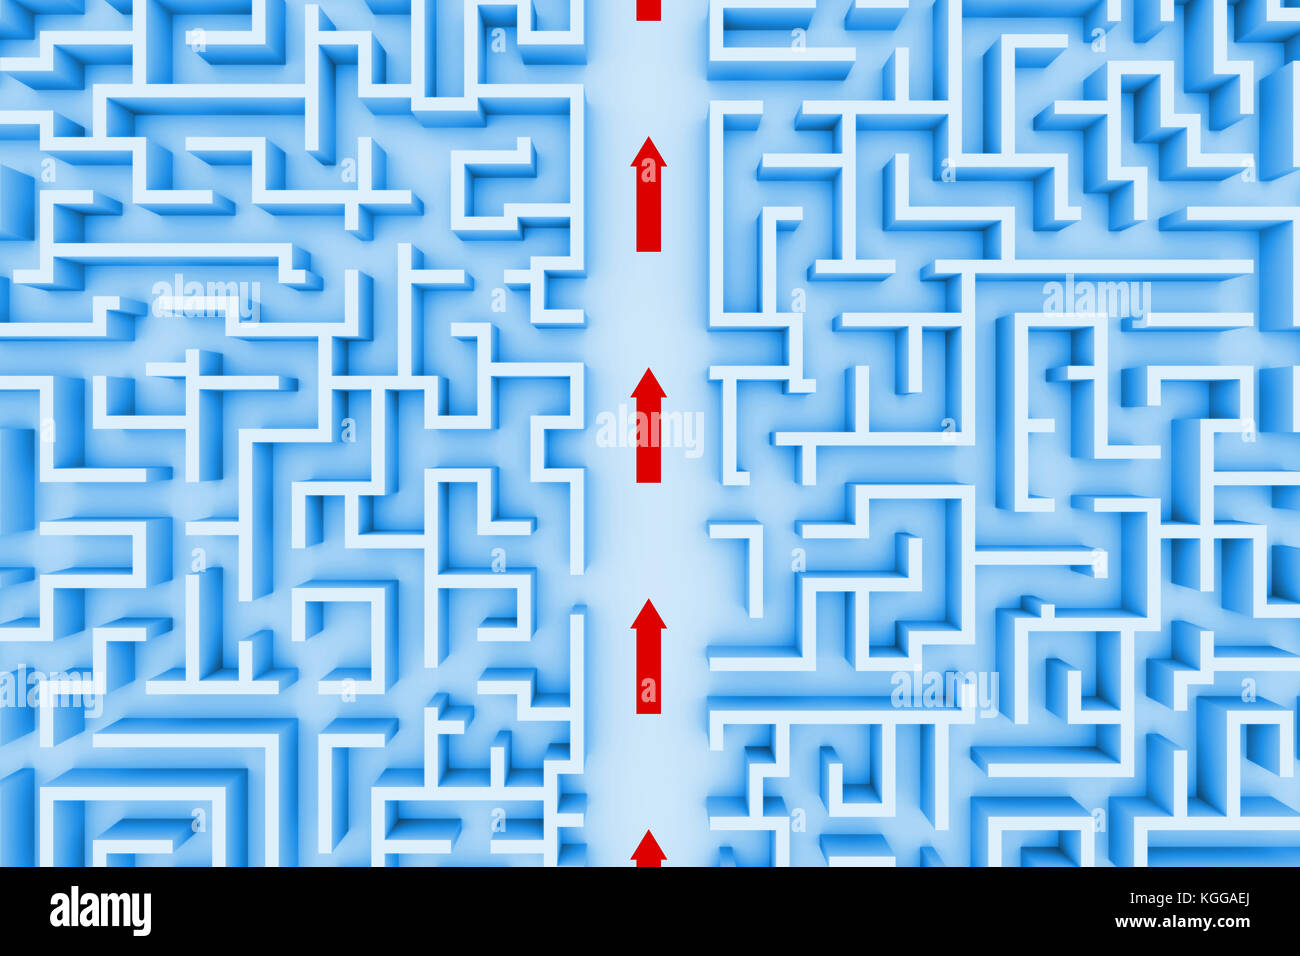 huge maze structure, red arrows showing shortcut through the labyrinth (blue 3d illustration) - Stock Image